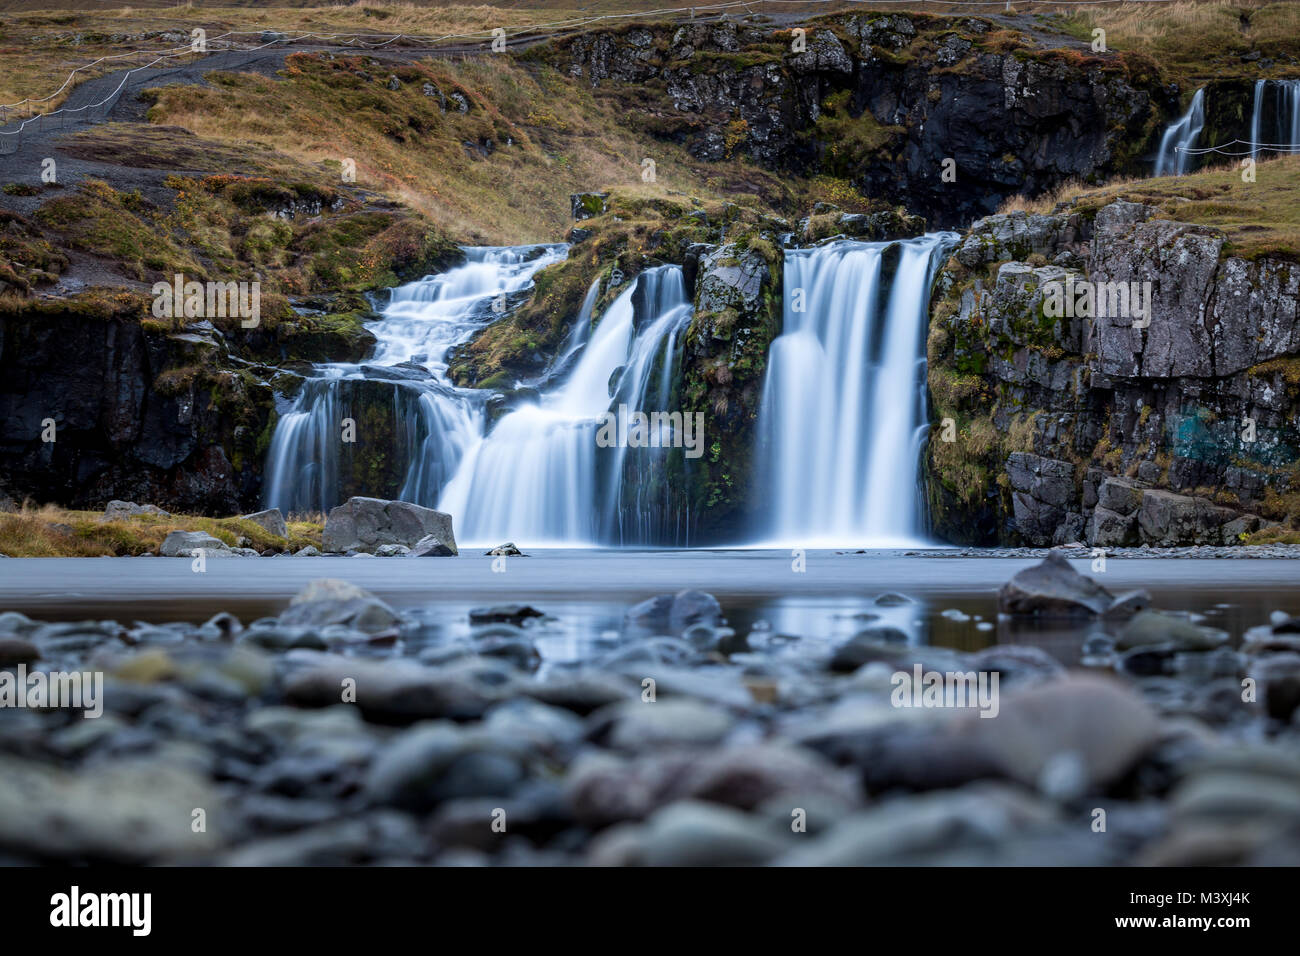 Waterfall and beautiful view at the kirkjufell mountain in iceland europe awesome - Stock Image